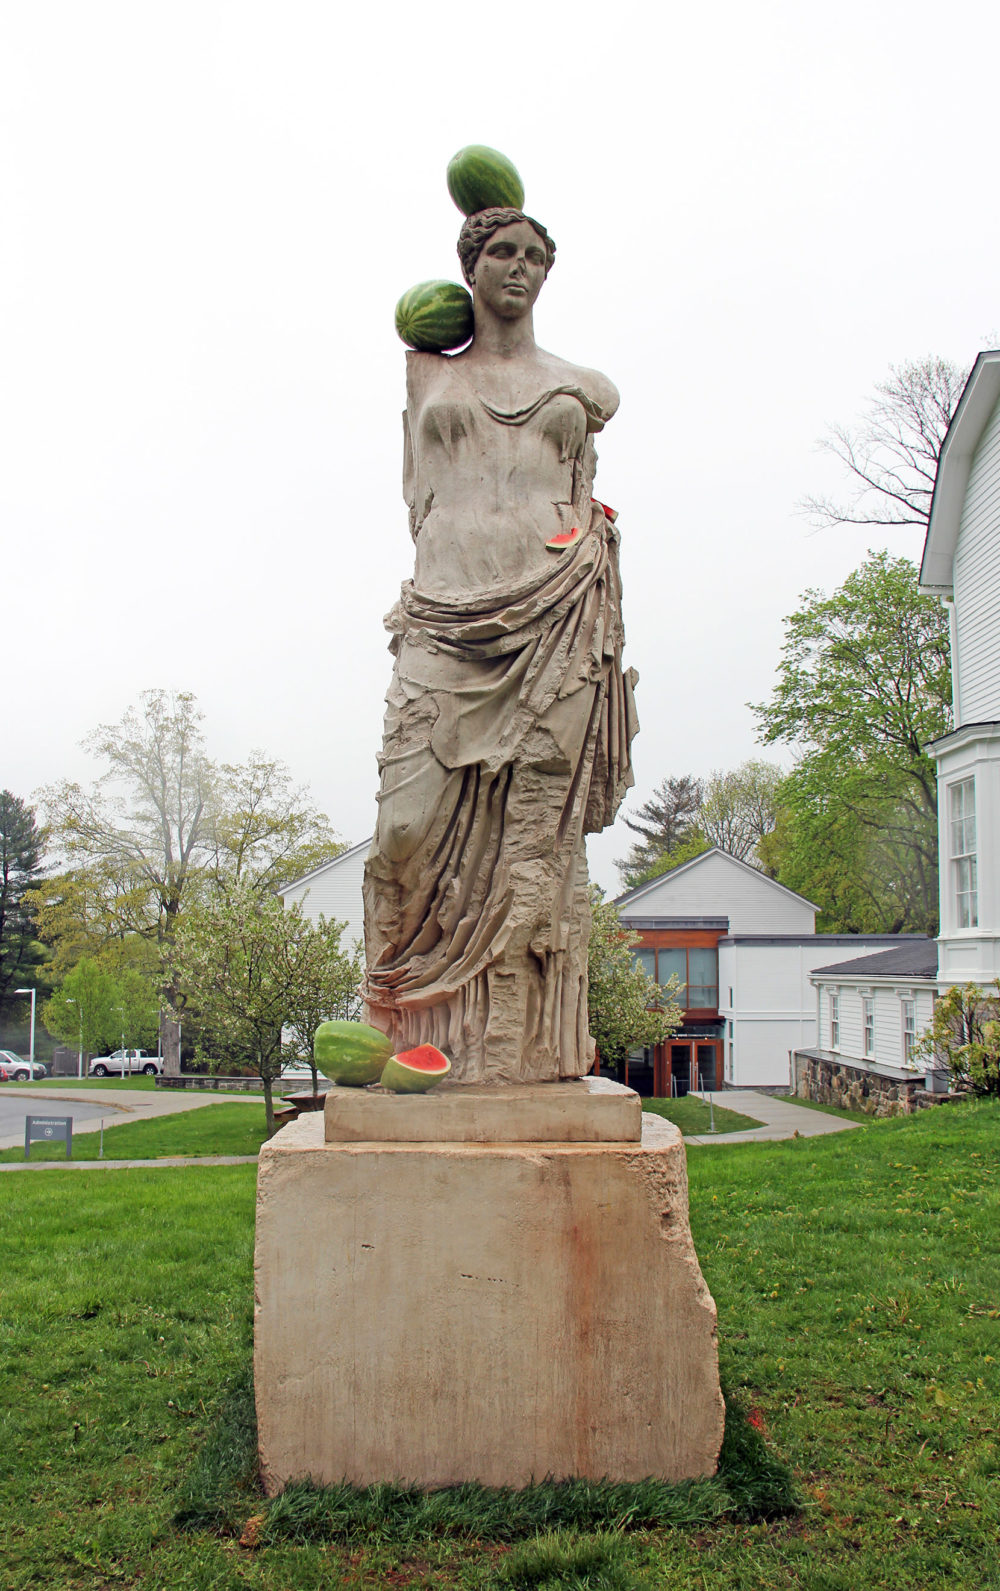 Greek statue of Hera with watermelons resting on stone figure